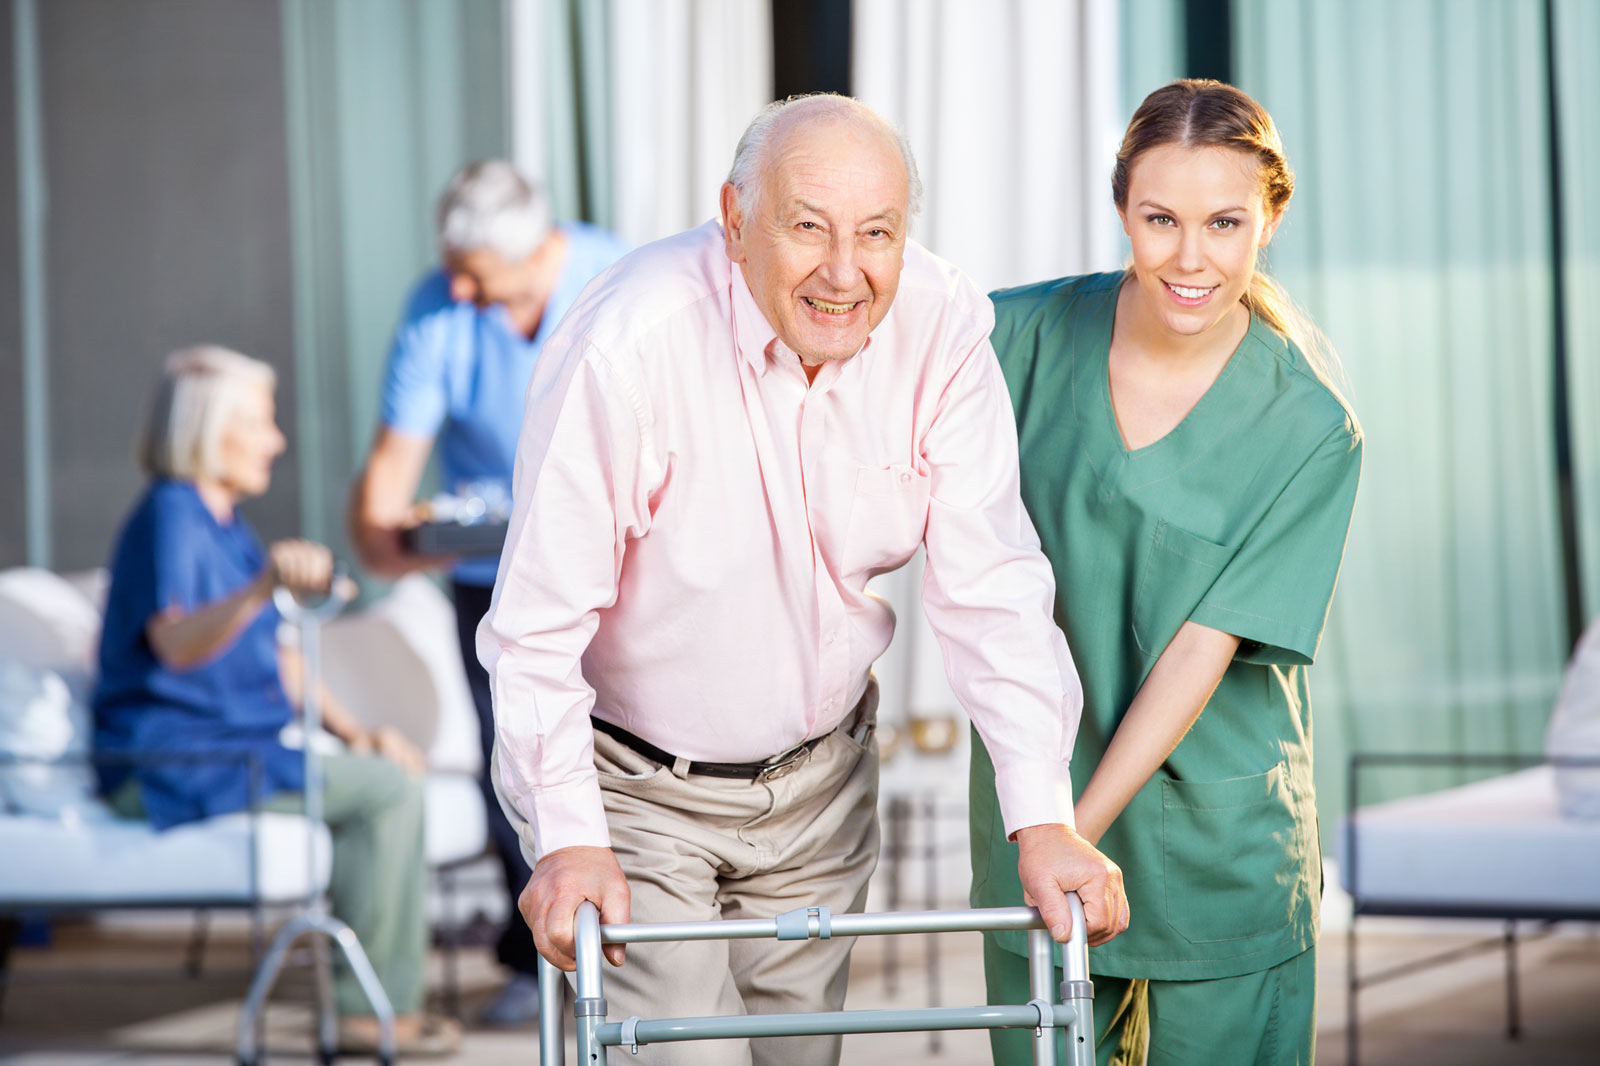 Senior Care at Home in New York